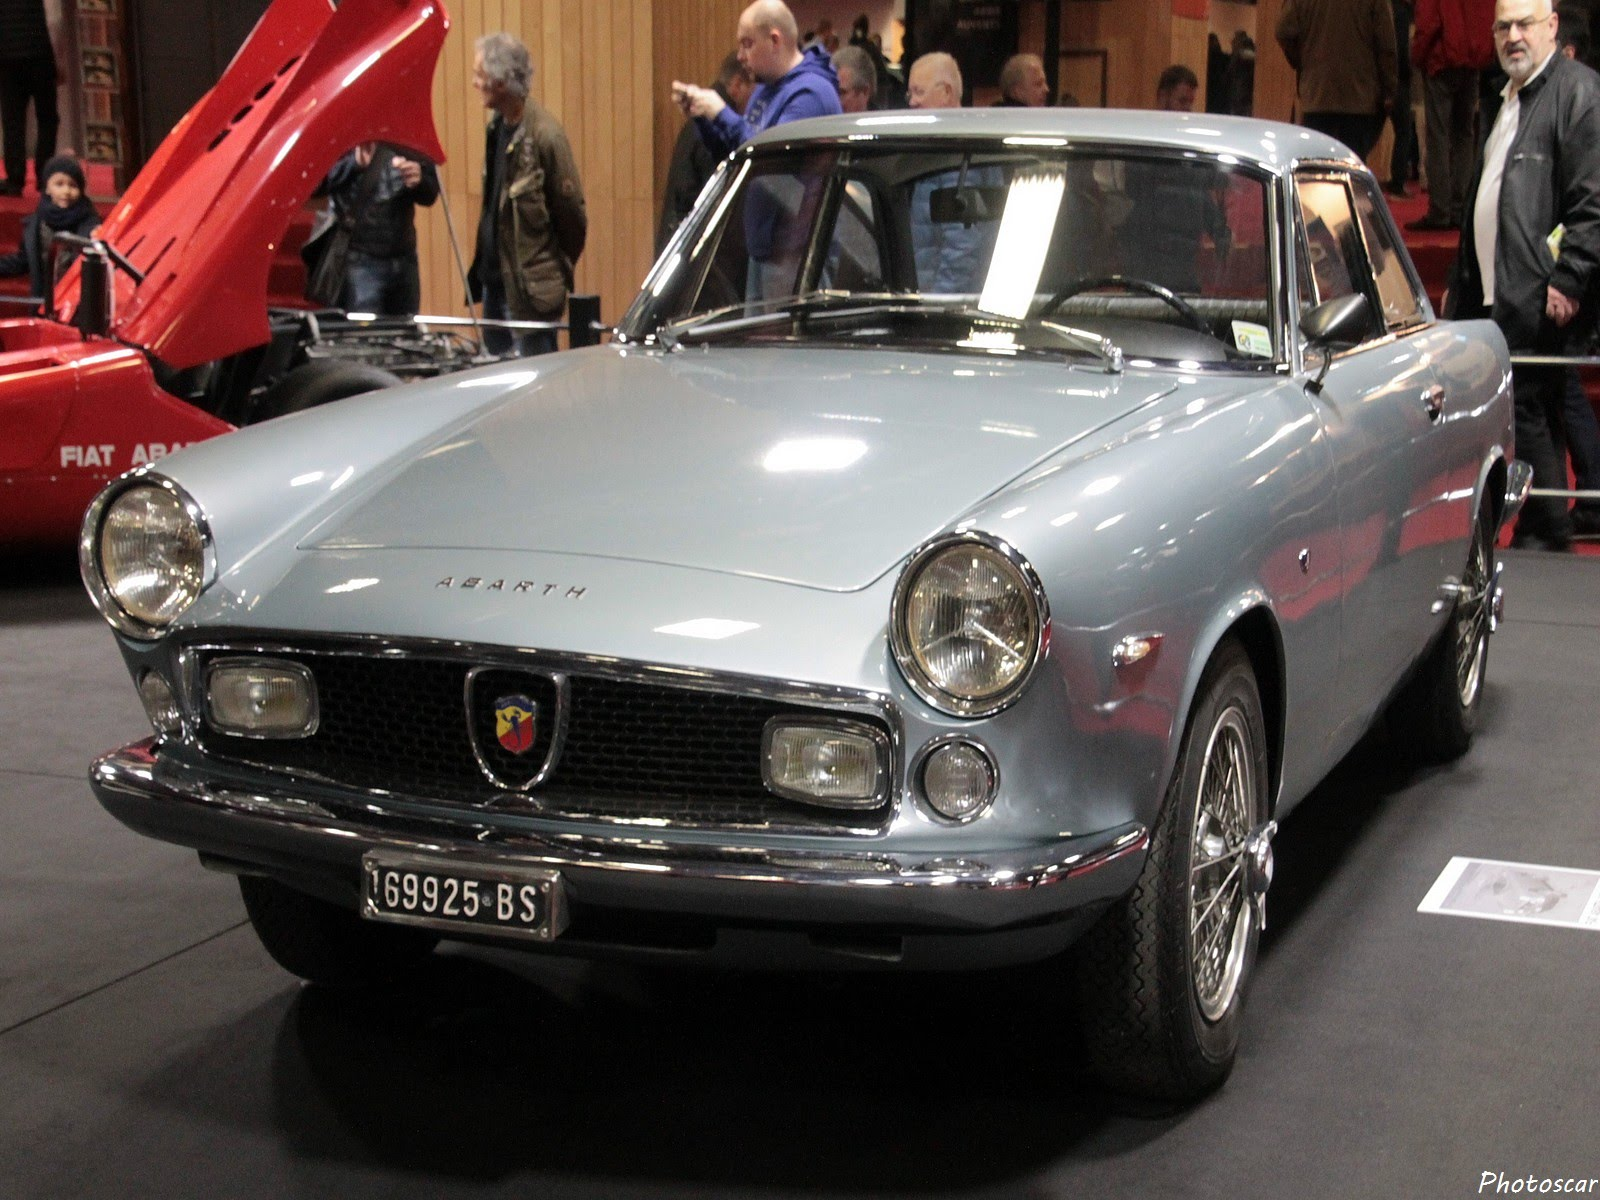 Fiat Abarth 2400 Allemano Coupe 1965